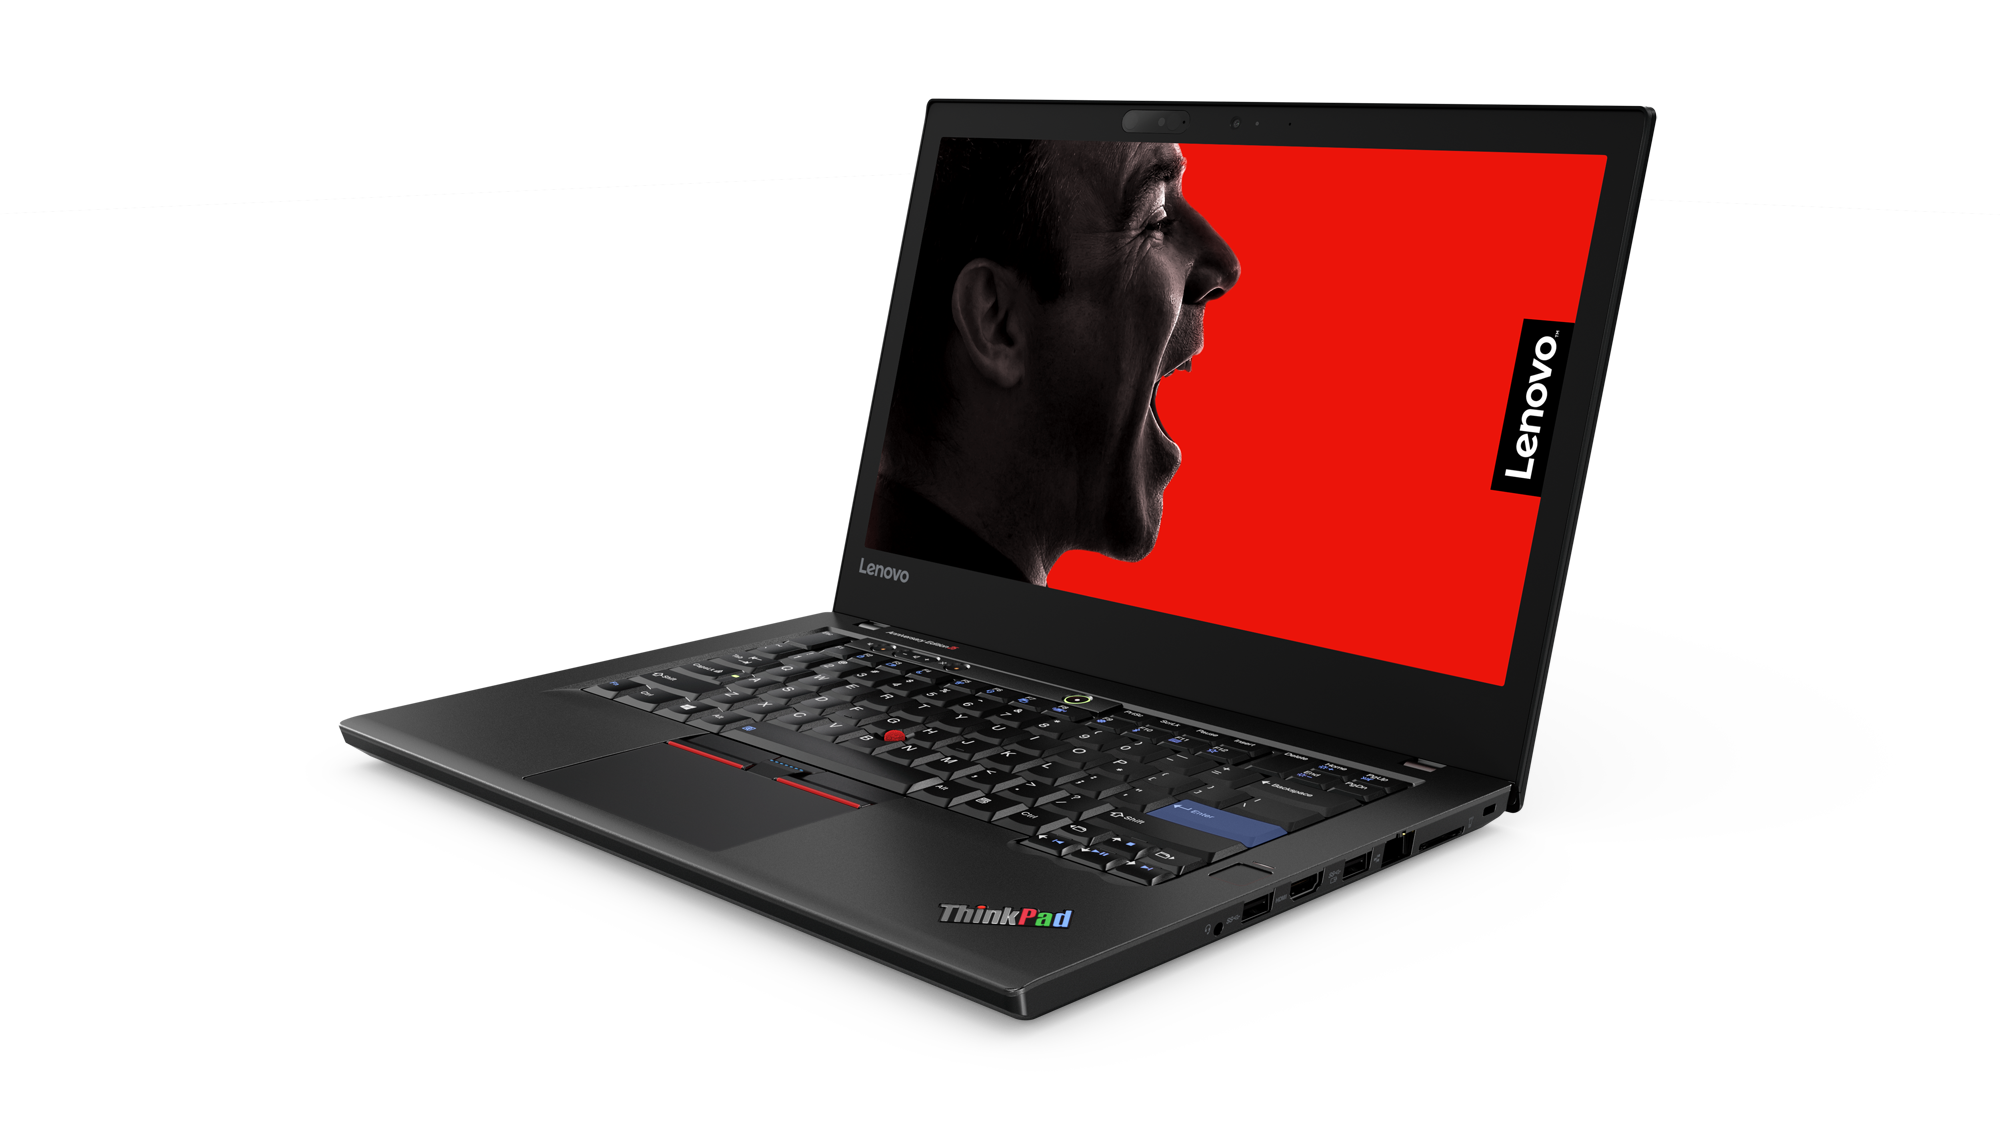 Lenovo unveils retro ThinkPad for 25th anniversary